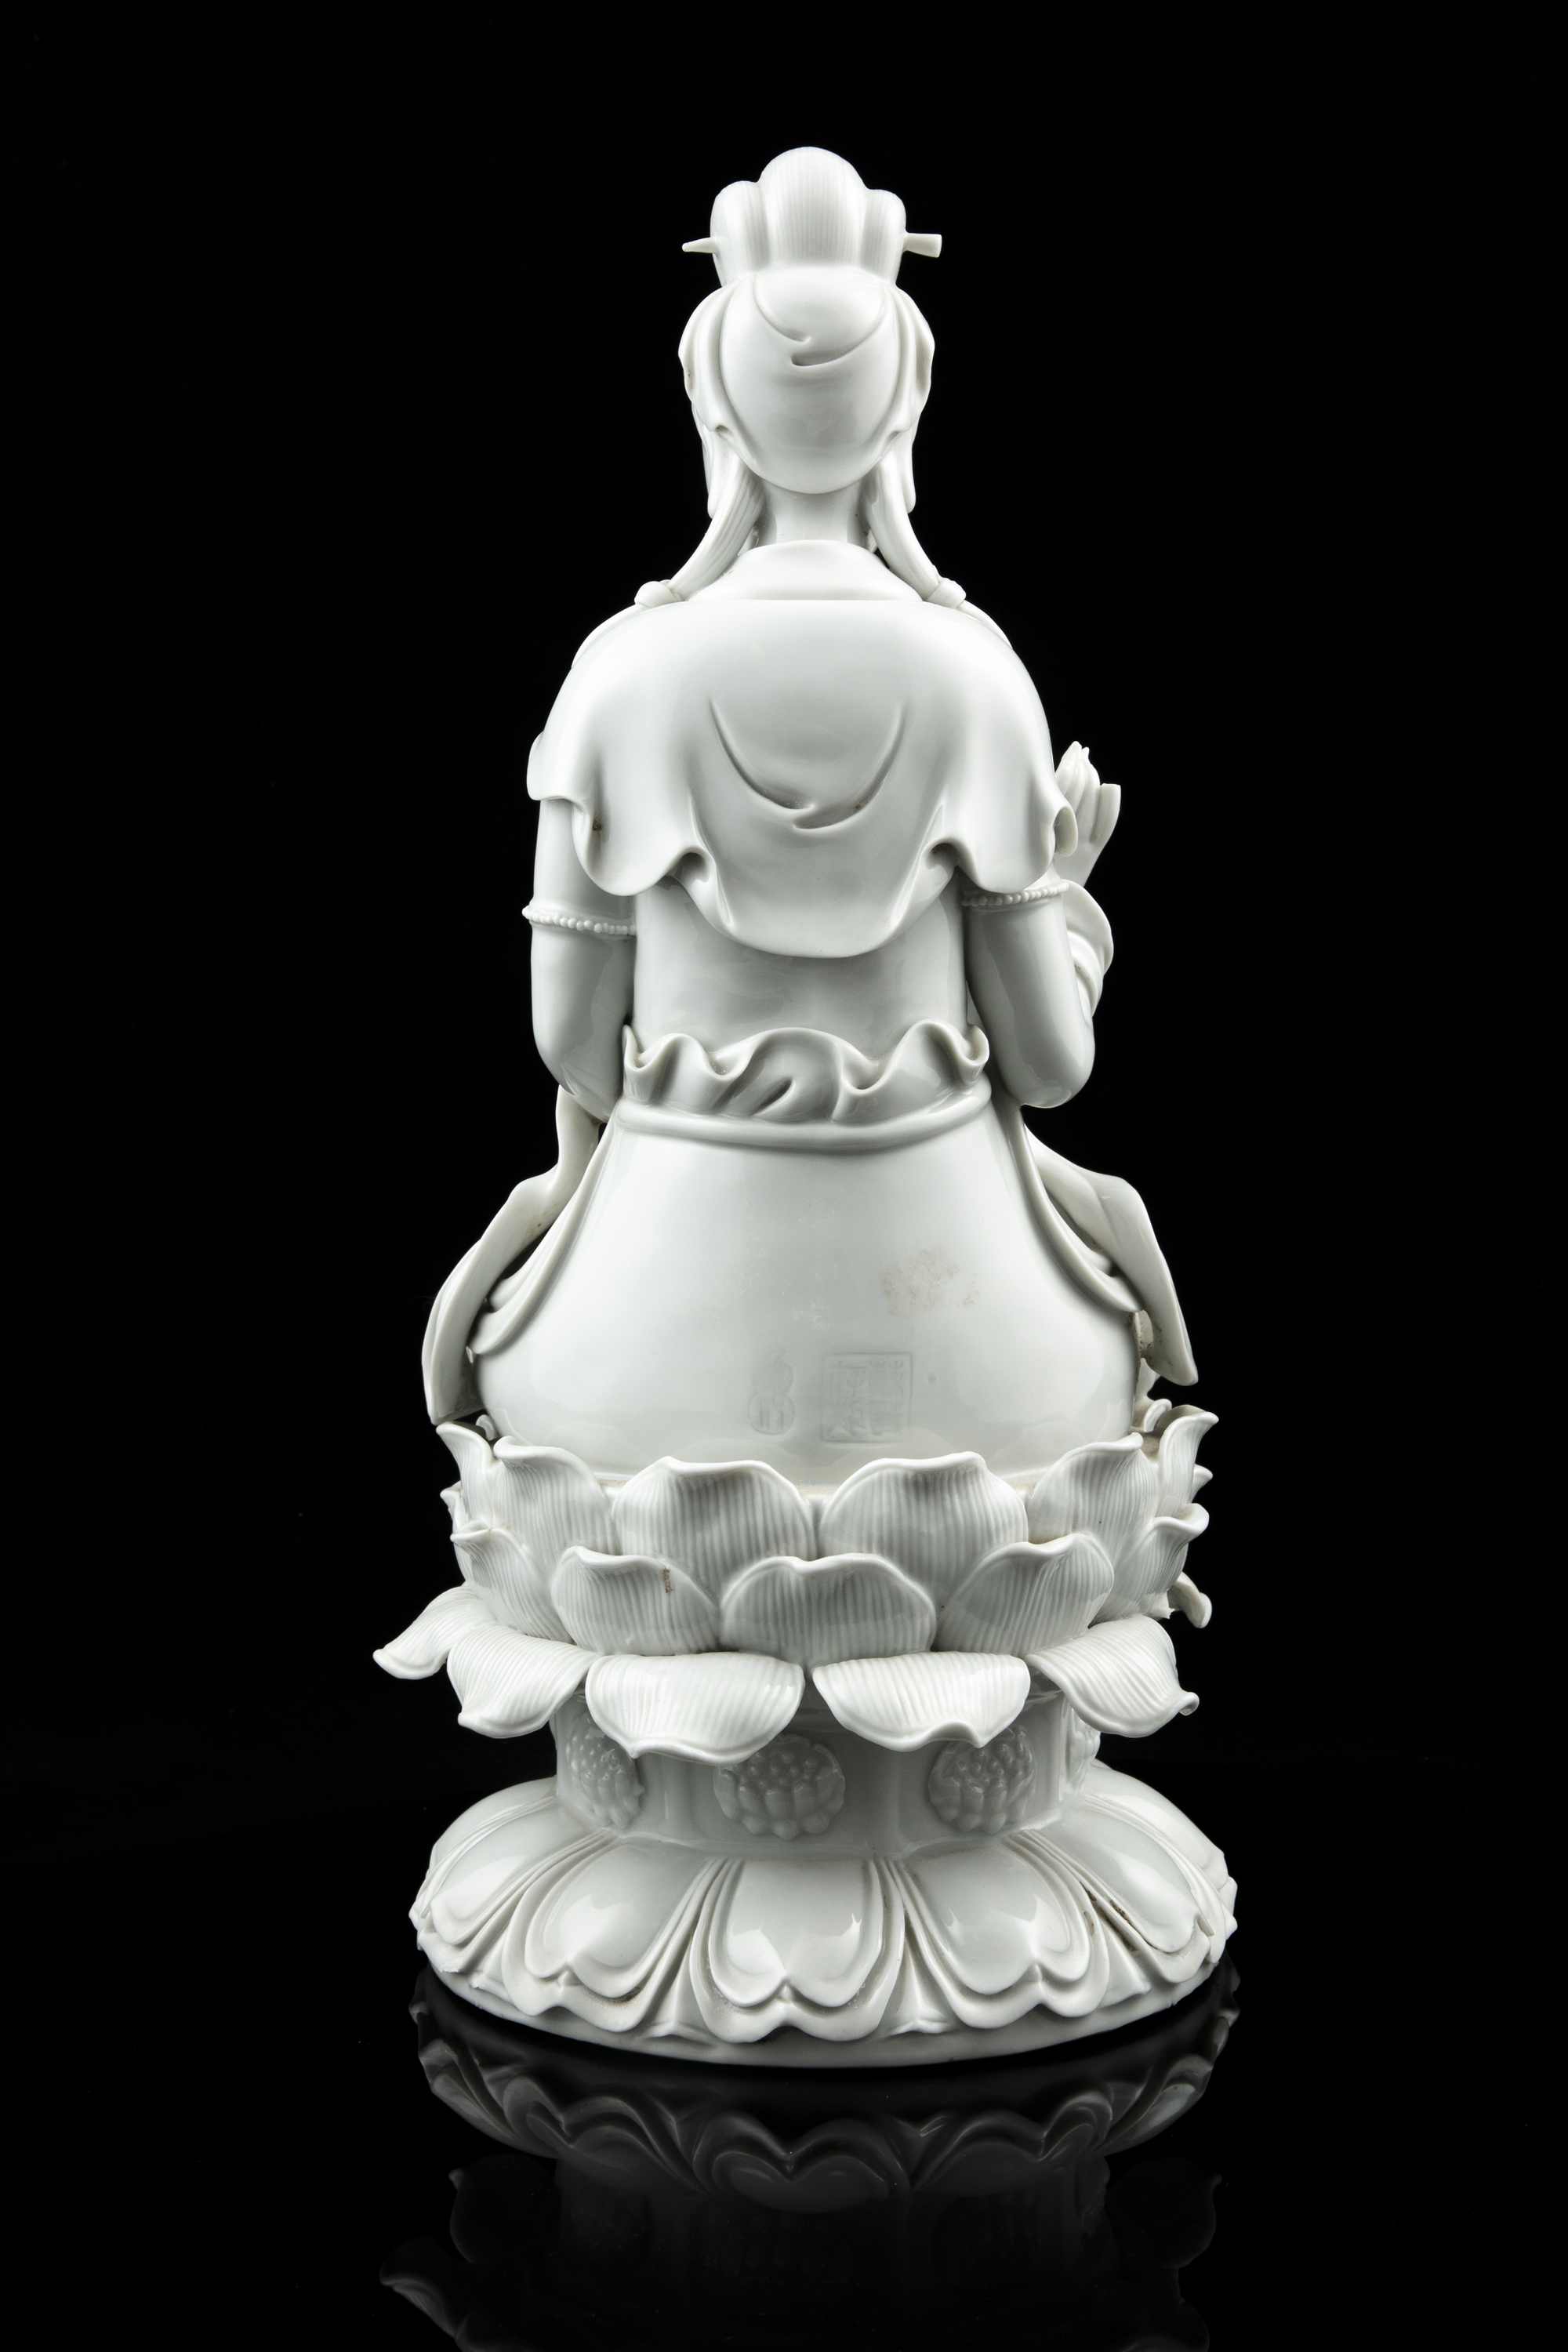 A LARGE DEHUA FIGURE OF A SEATED GUANYIN China, 19th to 20th century The goddess of mercy is - Image 9 of 18